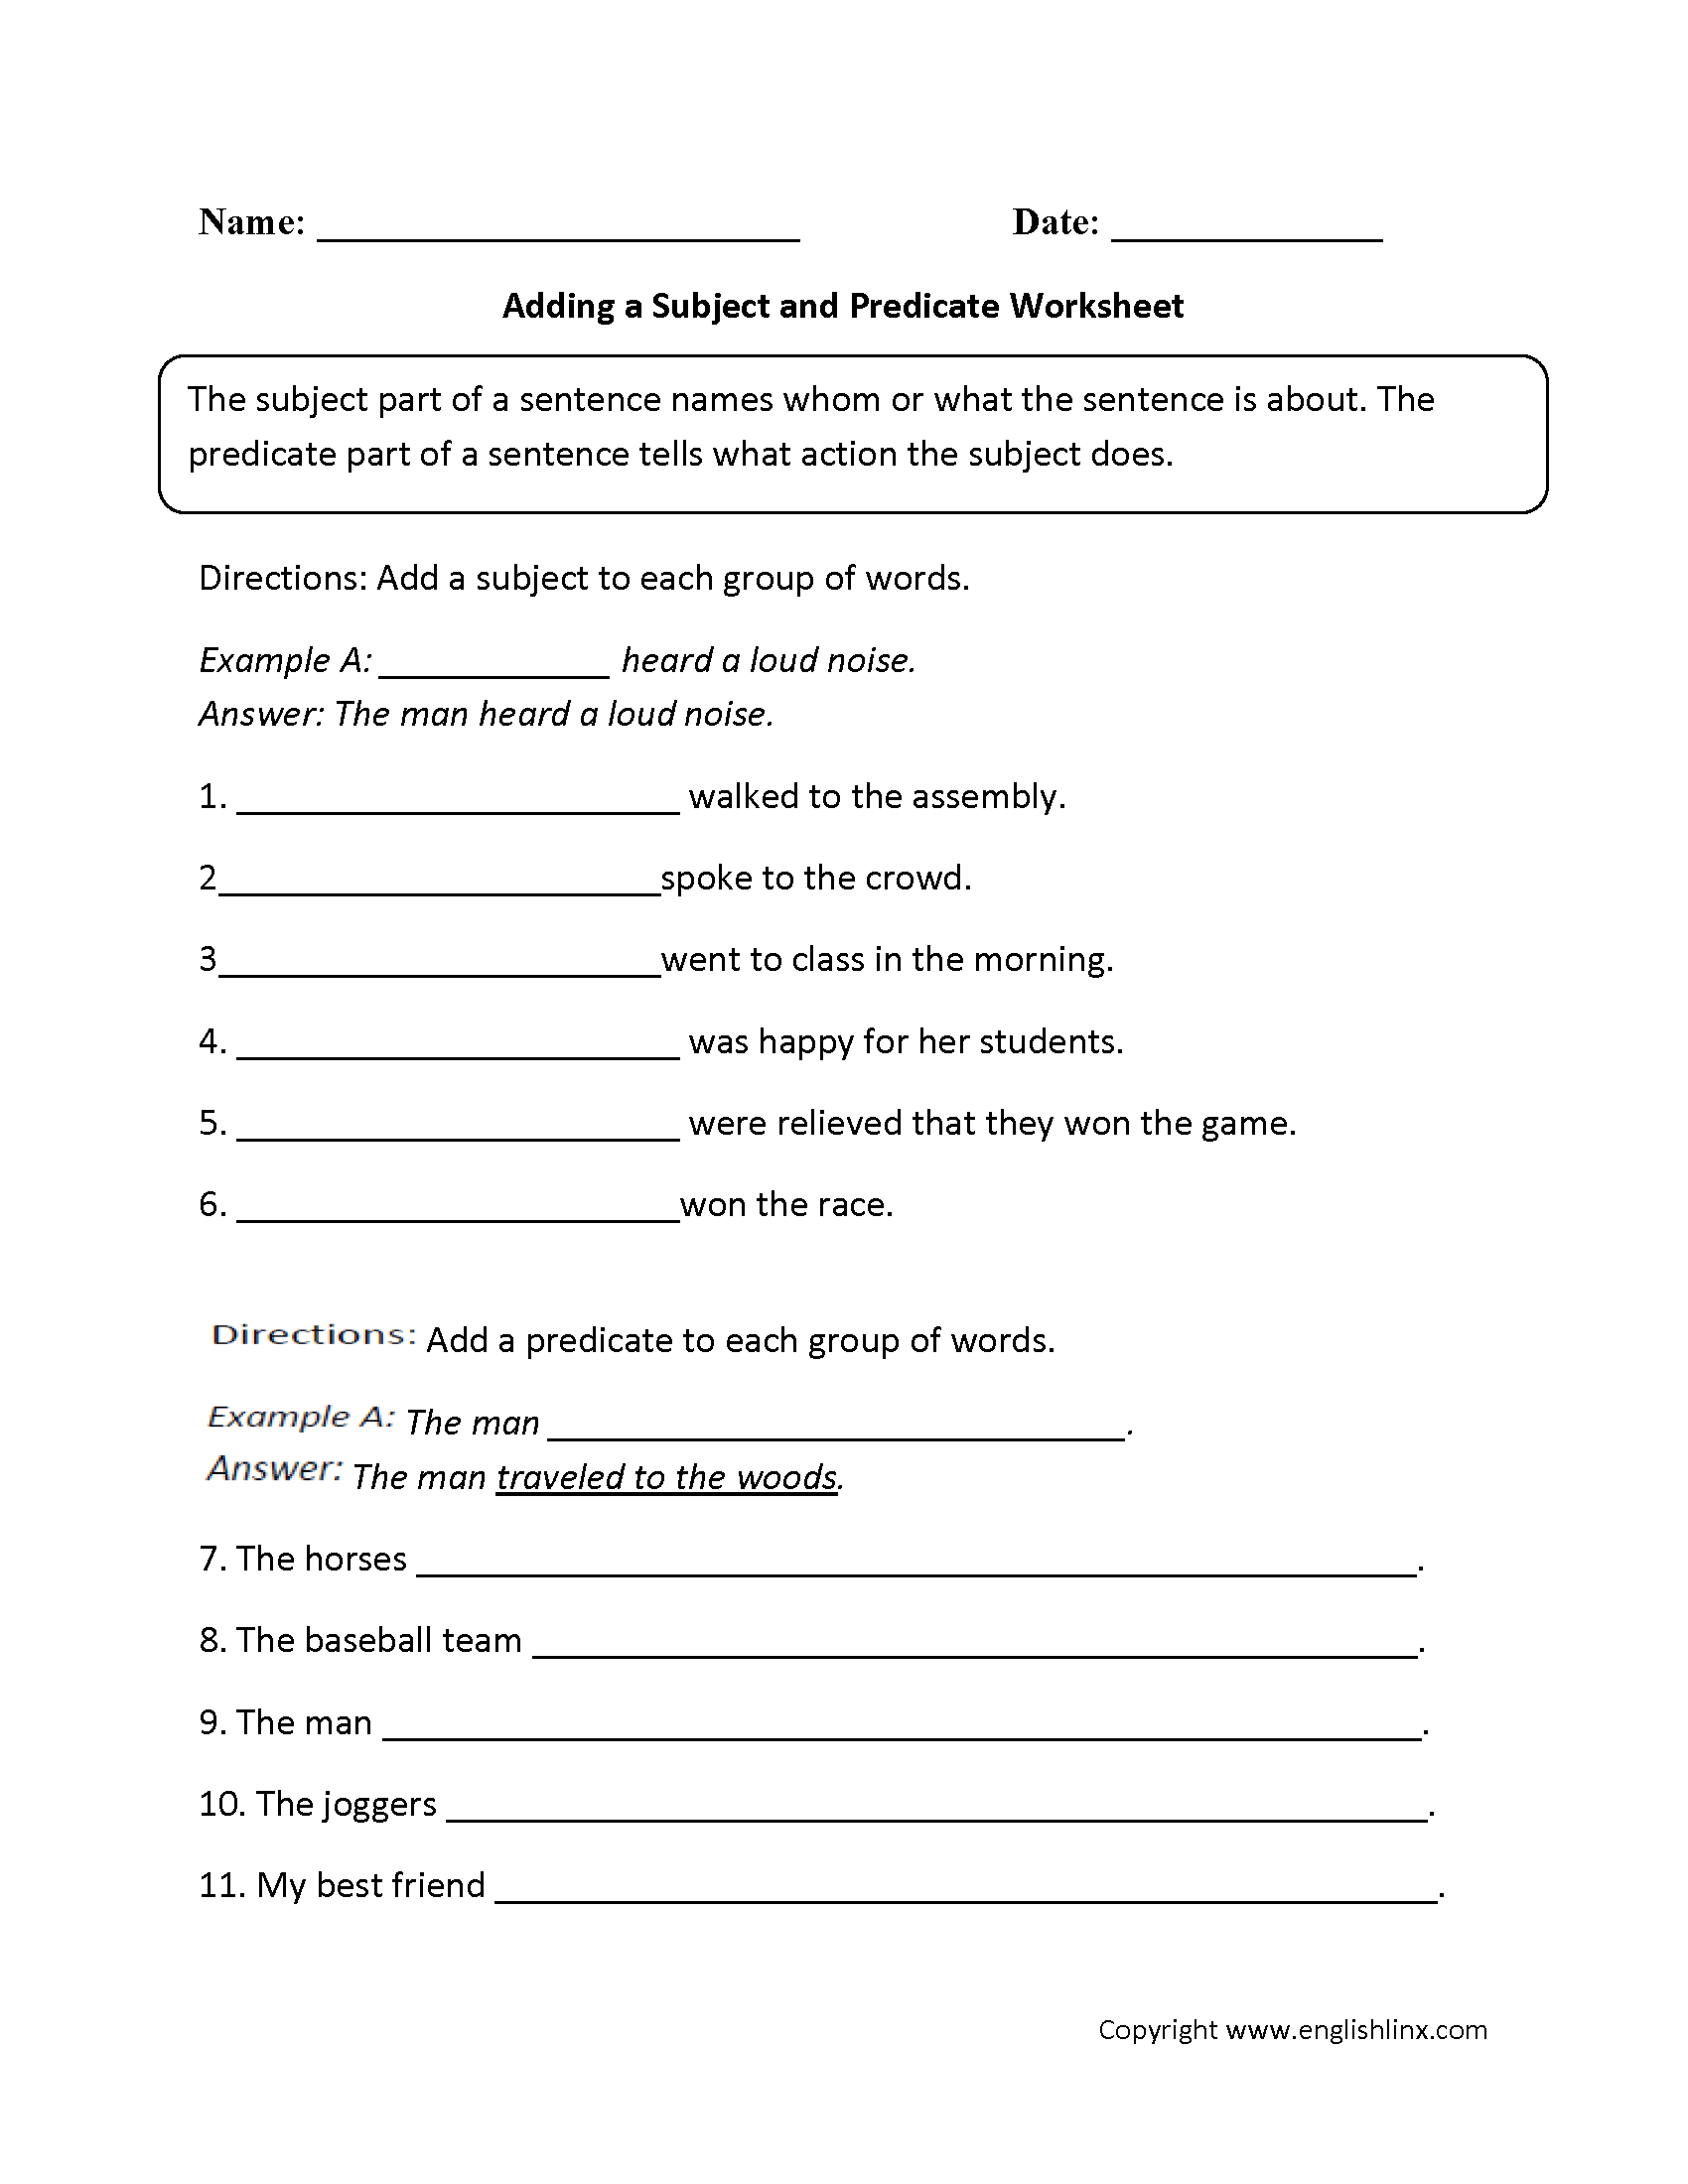 Worksheet Subject Predicate Worksheet englishlinx com subject and predicate worksheets adding a worksheet